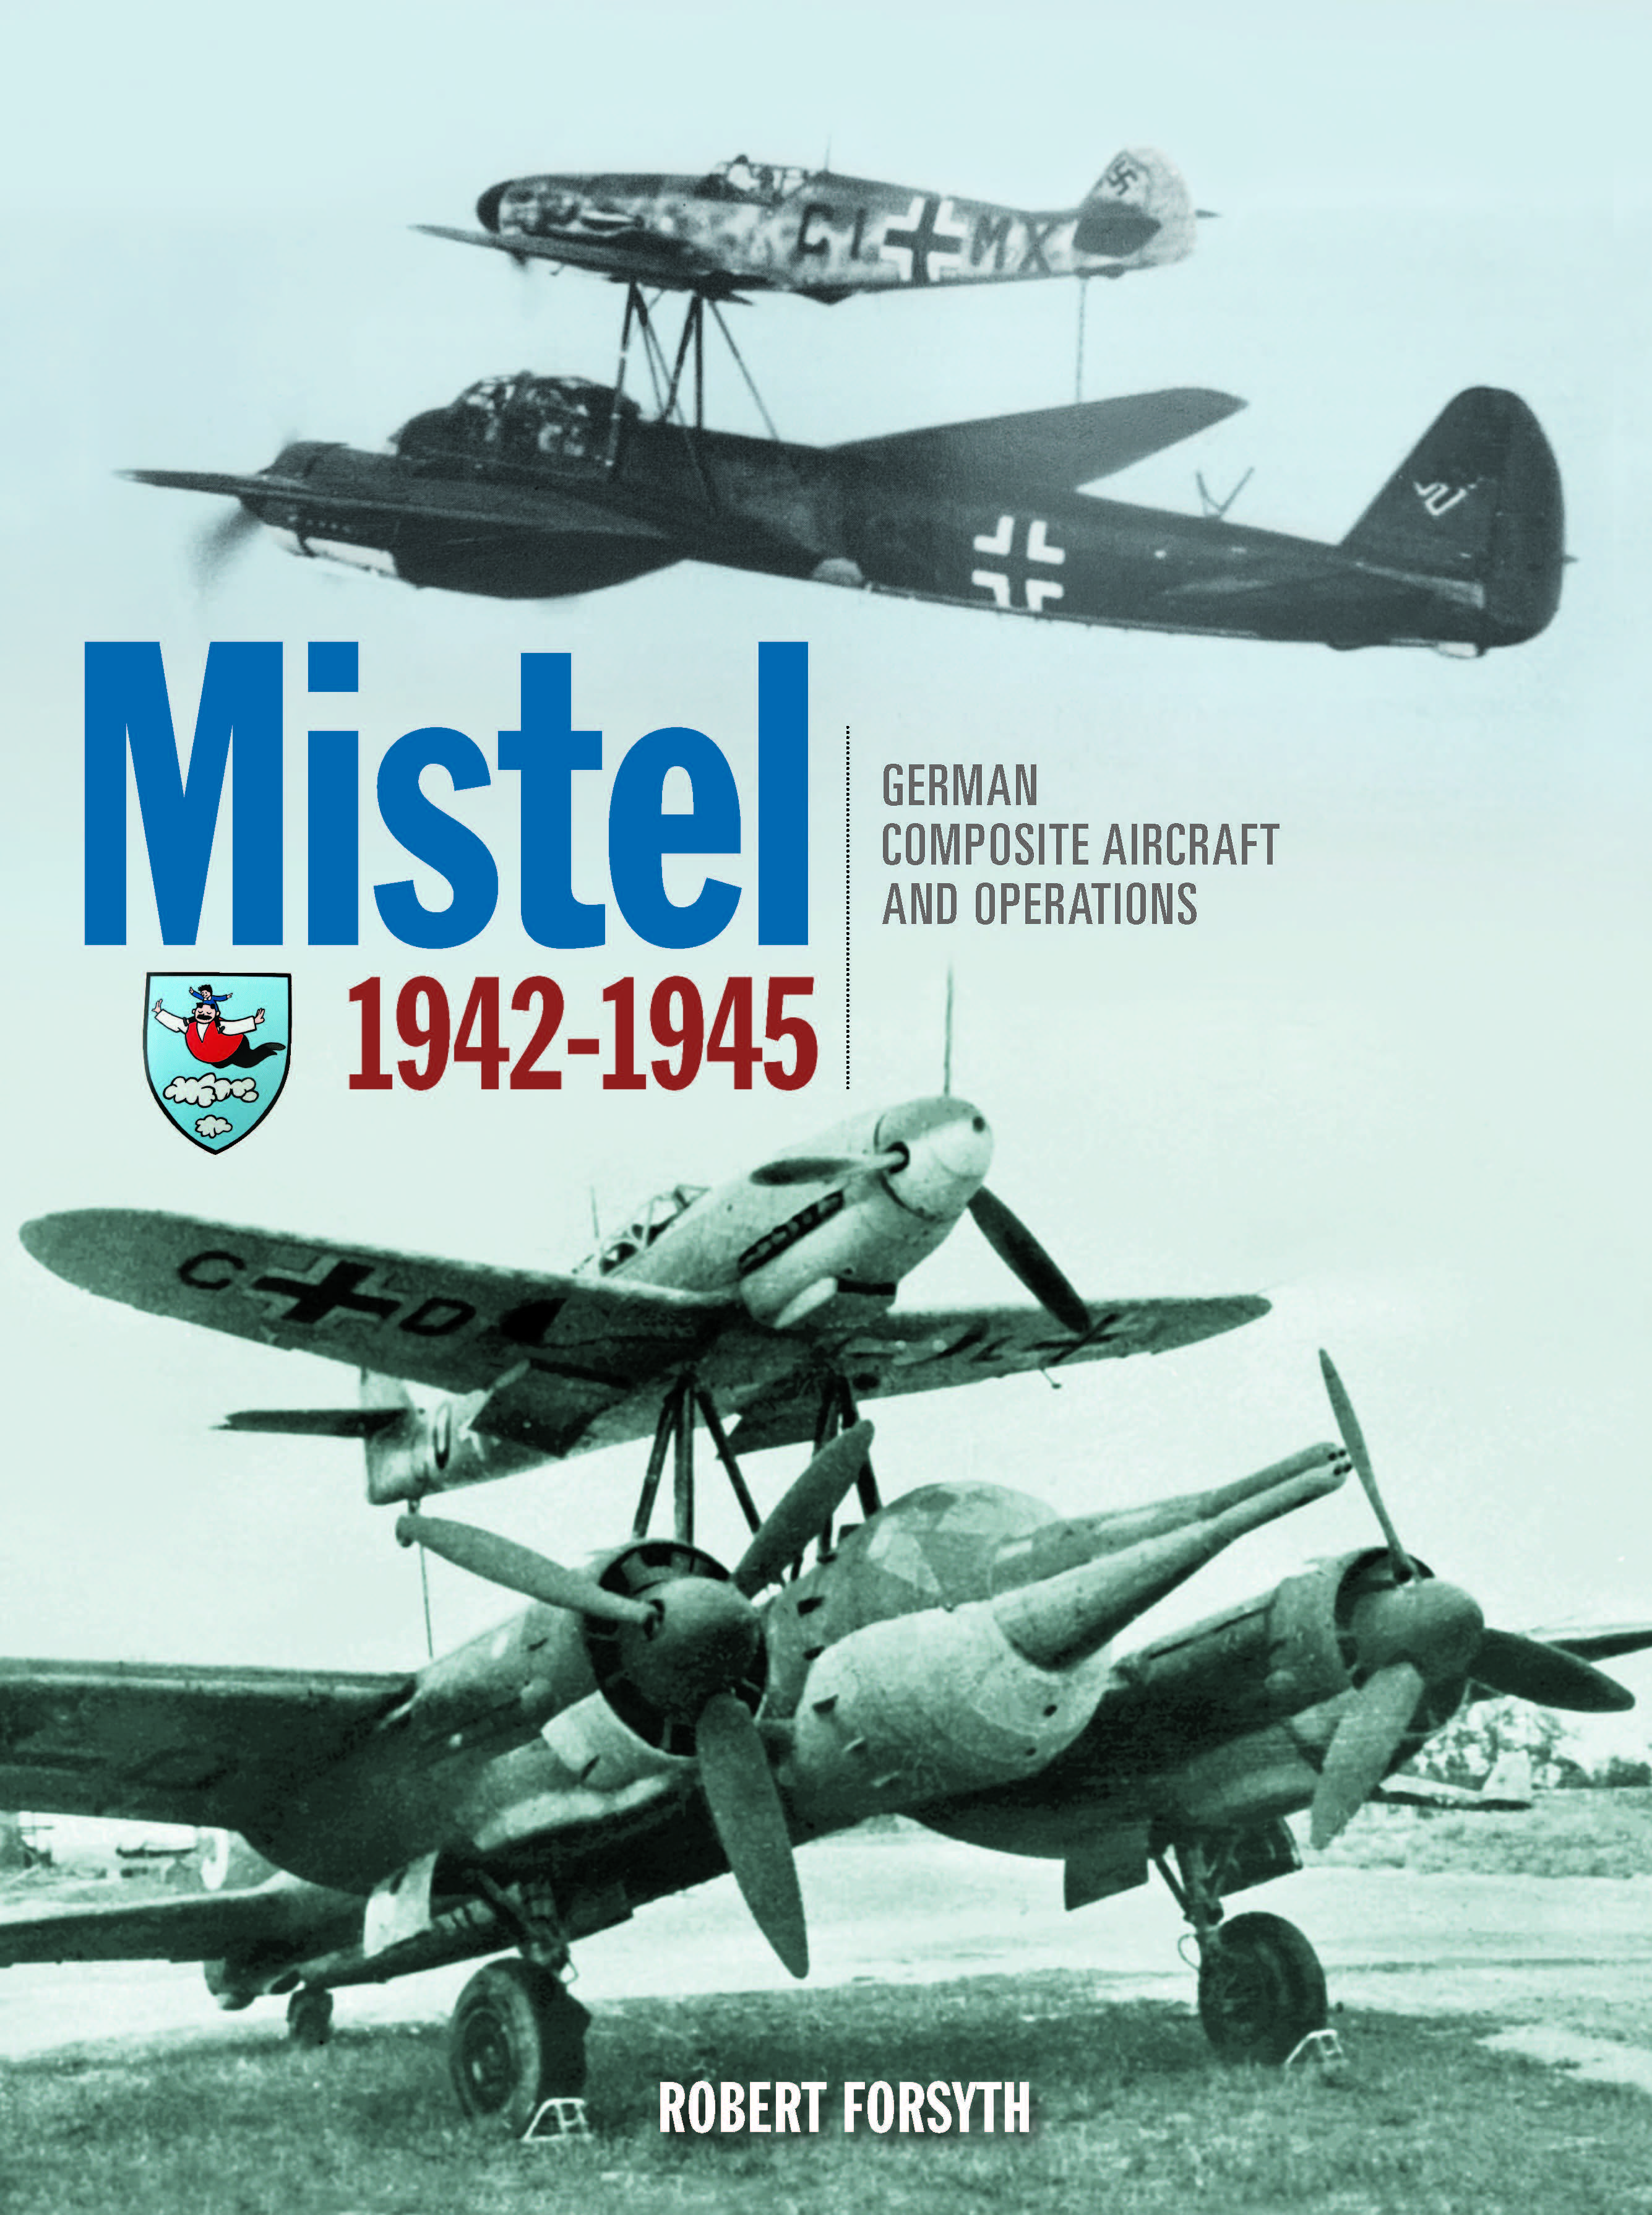 Mistel - German Composite Aircraft and Operations 1942-1945